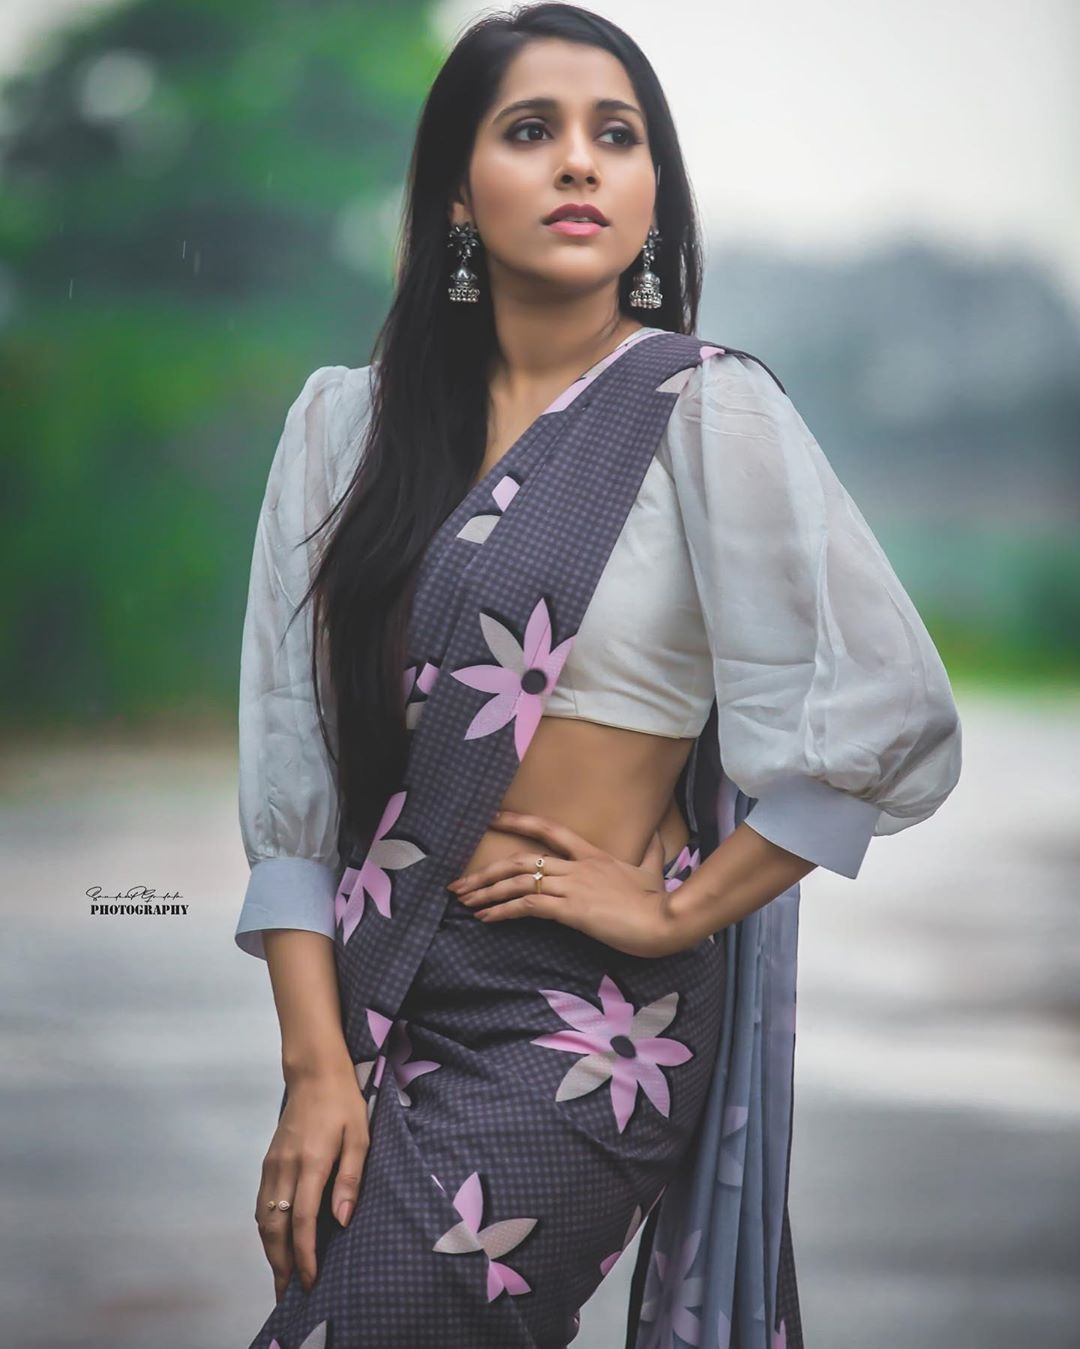 Actress Rashmi Gautam New Saree Photoshoot Stills Gallery Latest Indian Hollywood Movies Updates Branding Online And Actress Gallery Your rashmi stock images are ready. actress rashmi gautam new saree